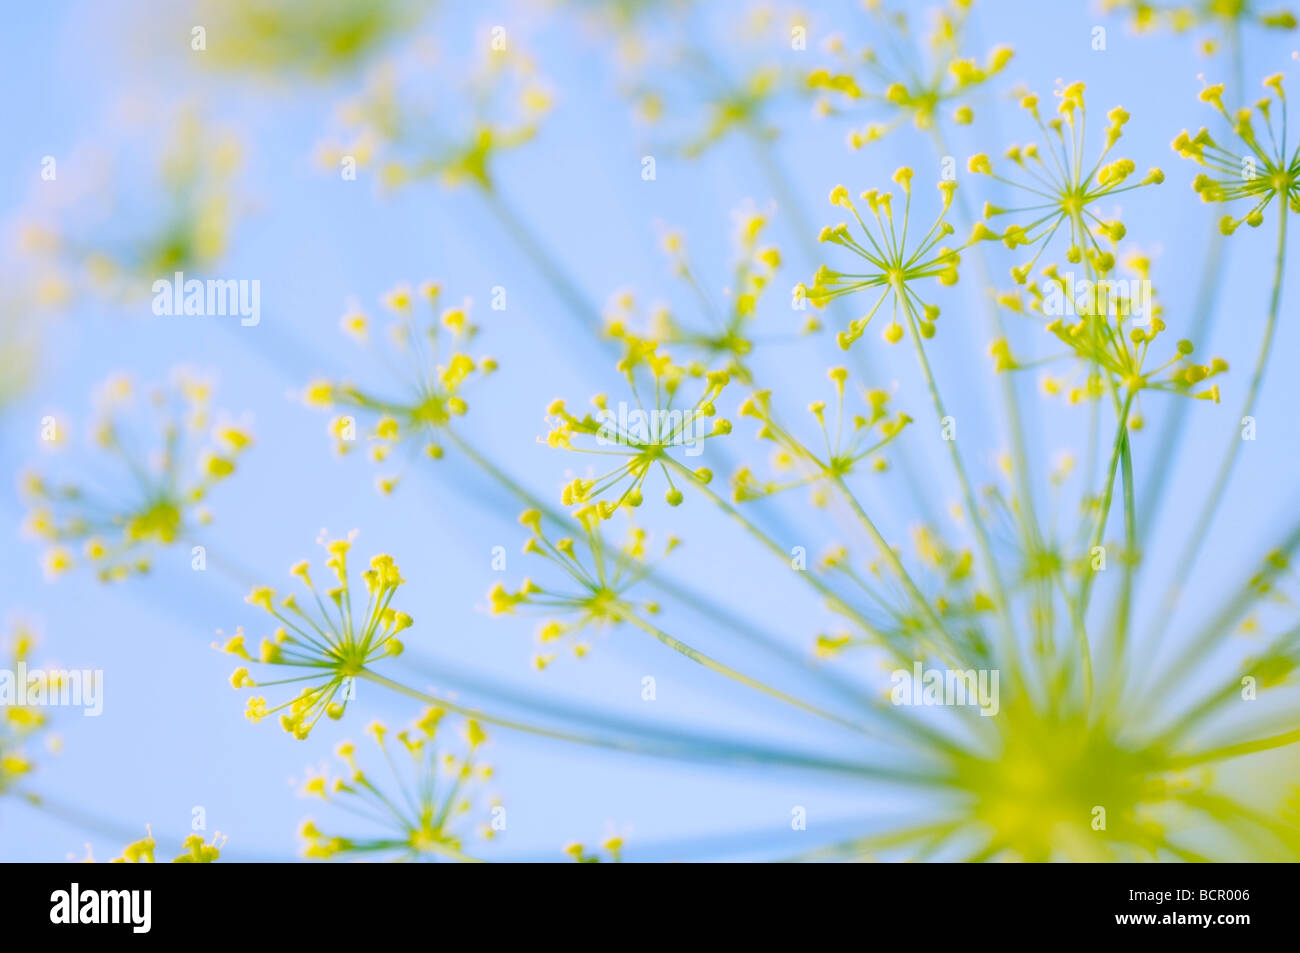 Anethum graveolens, Dill, Umbel shaped flower head with small yellow flowers on radiating stems against a blue sky. - Stock Image